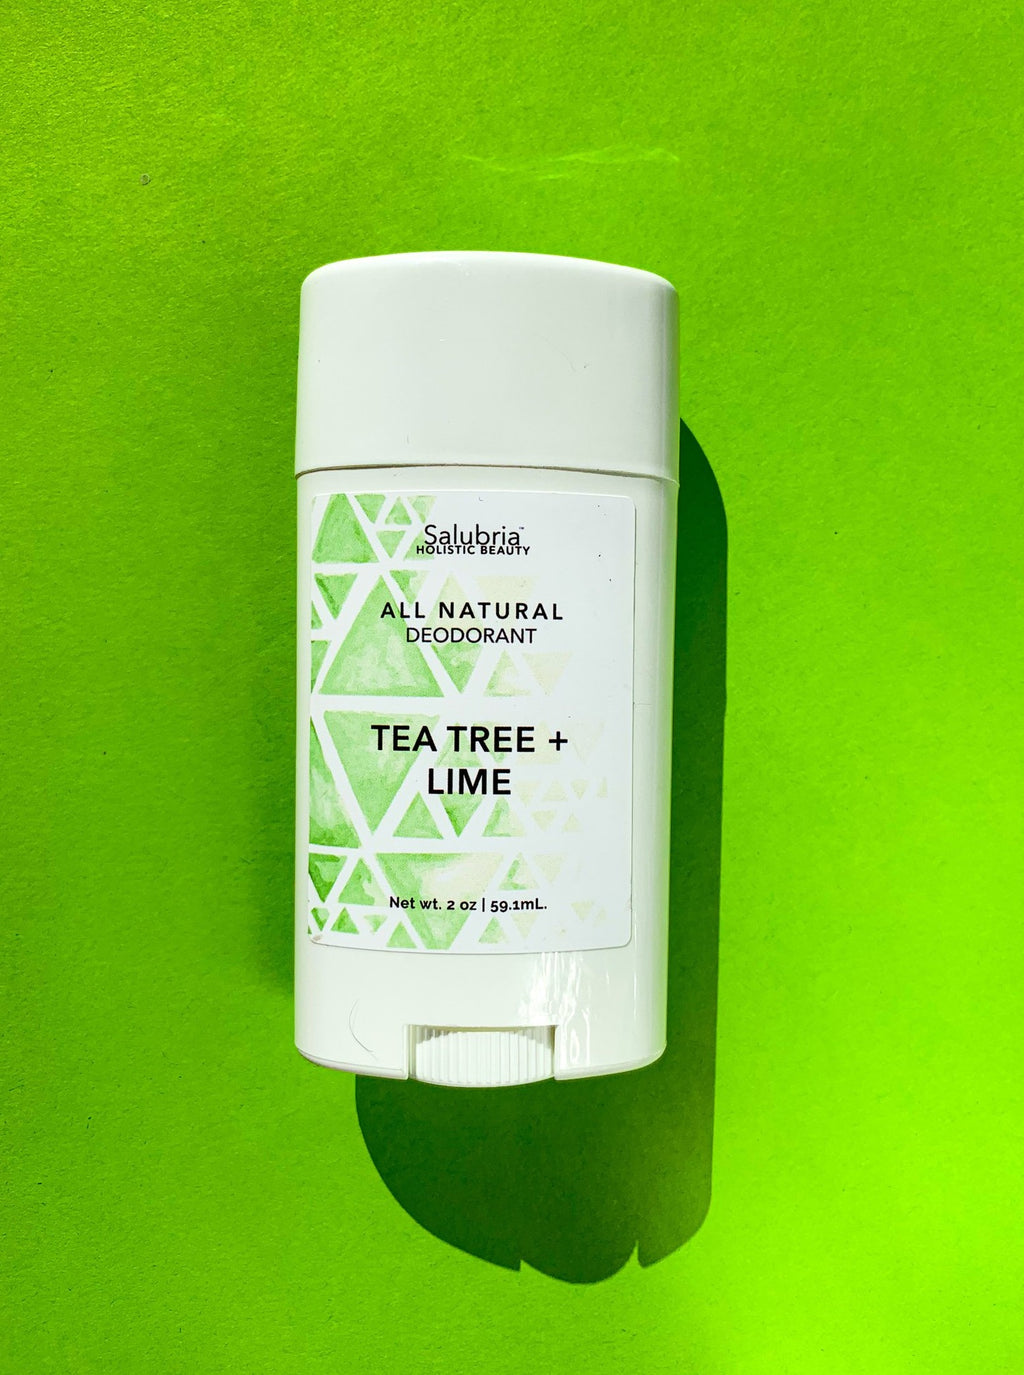 Tea Tree + Lime Deodorant - Salubria